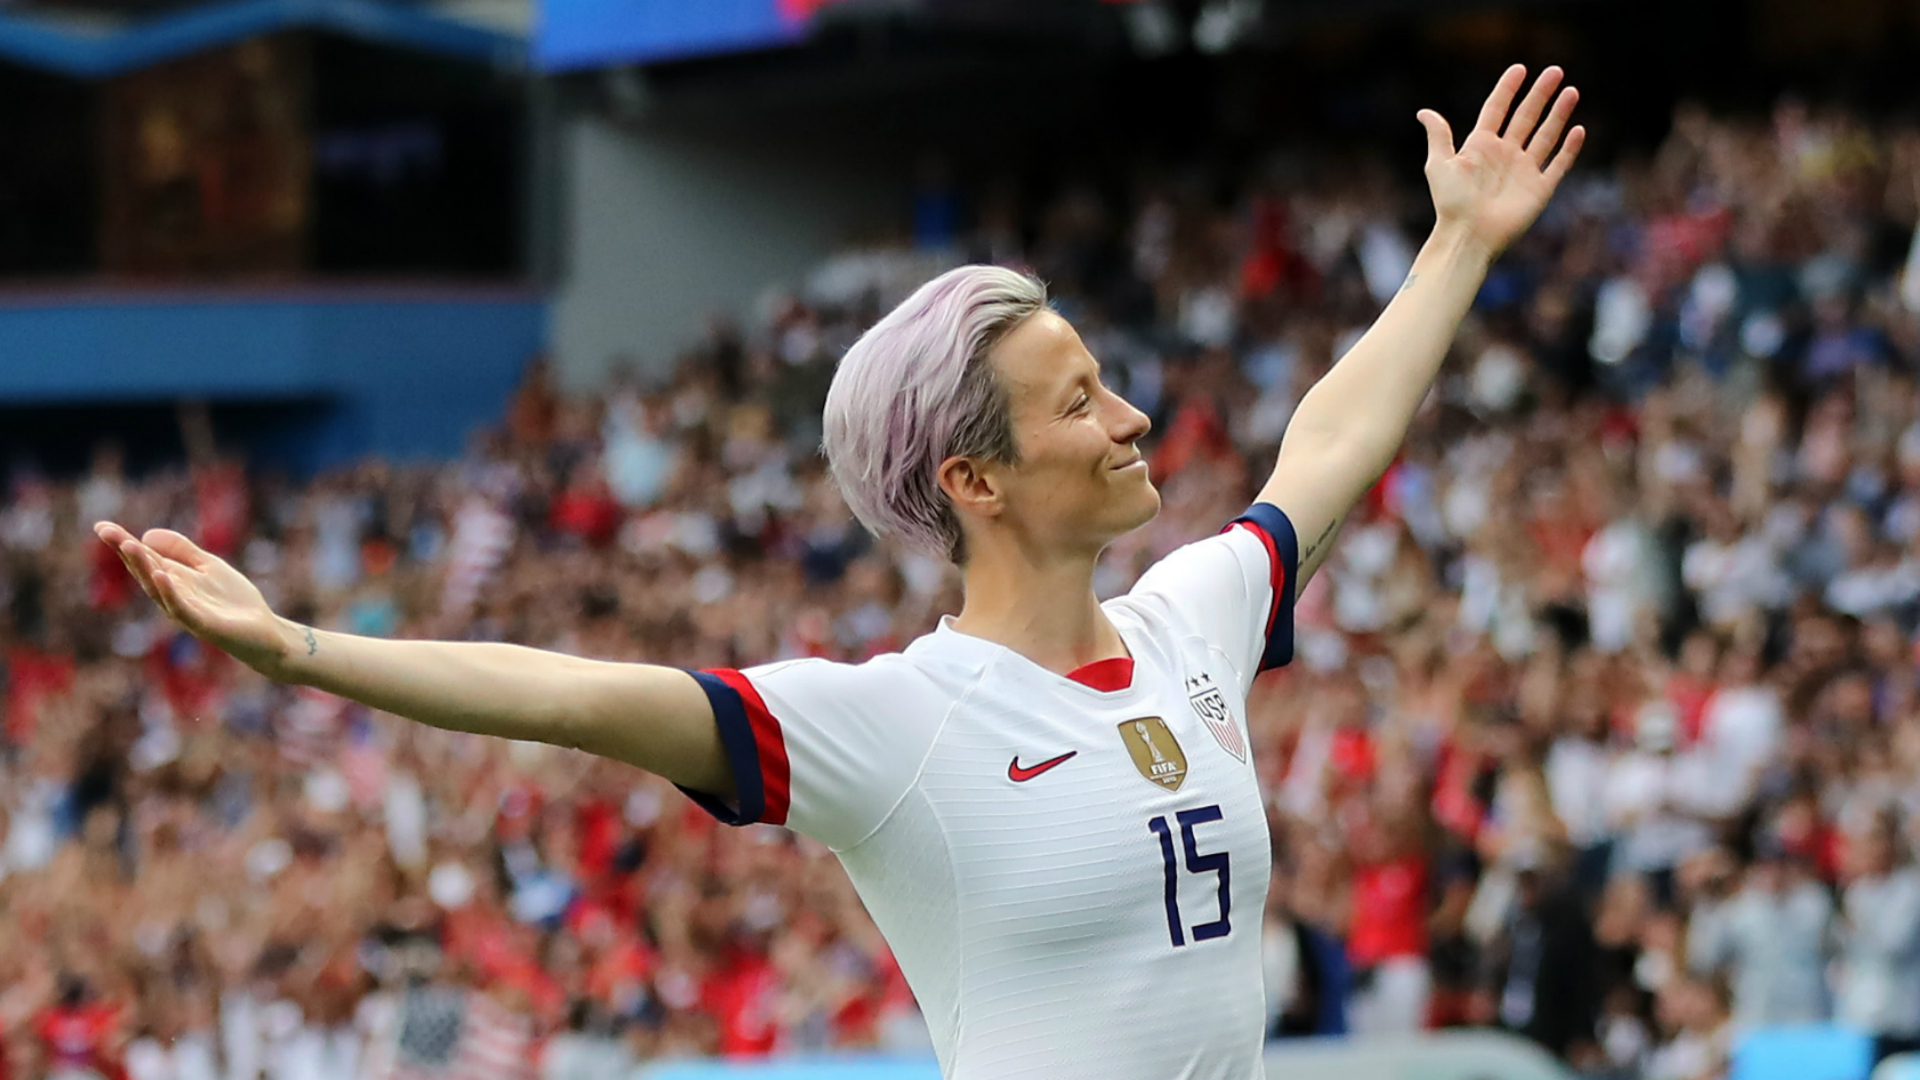 Women's World Cup 2019: Megan Rapinoe leads U.S. to knock out France